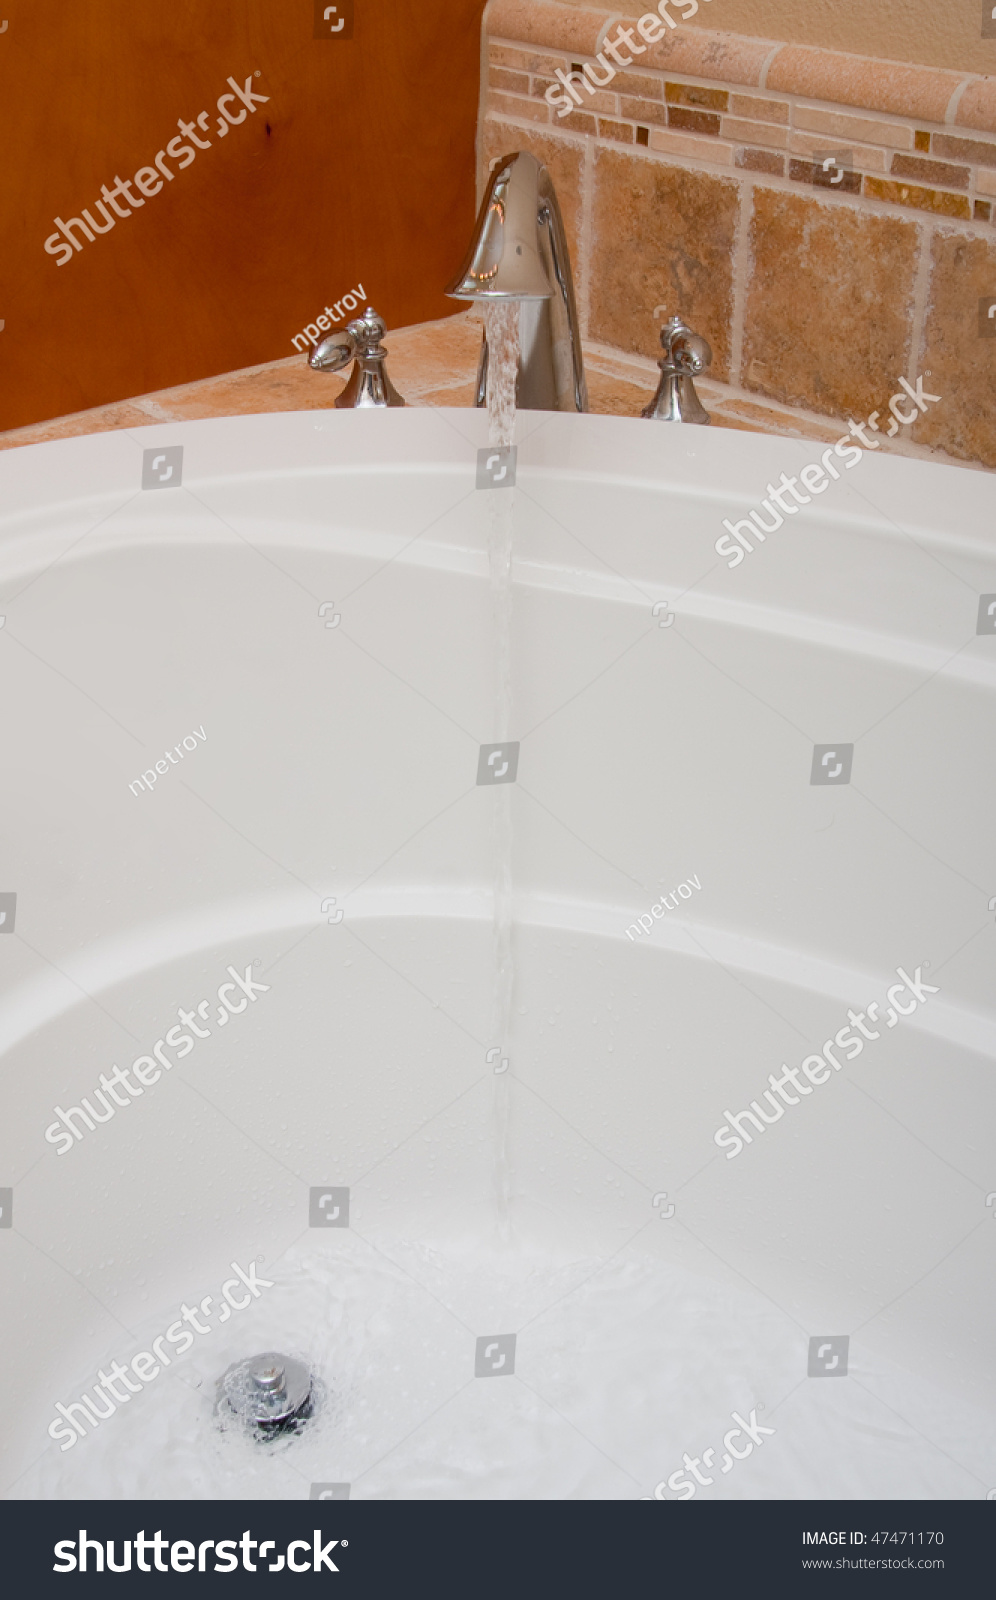 Open Faucet Water Running Into Bath Jacuzzi Stock Photo (Royalty ...